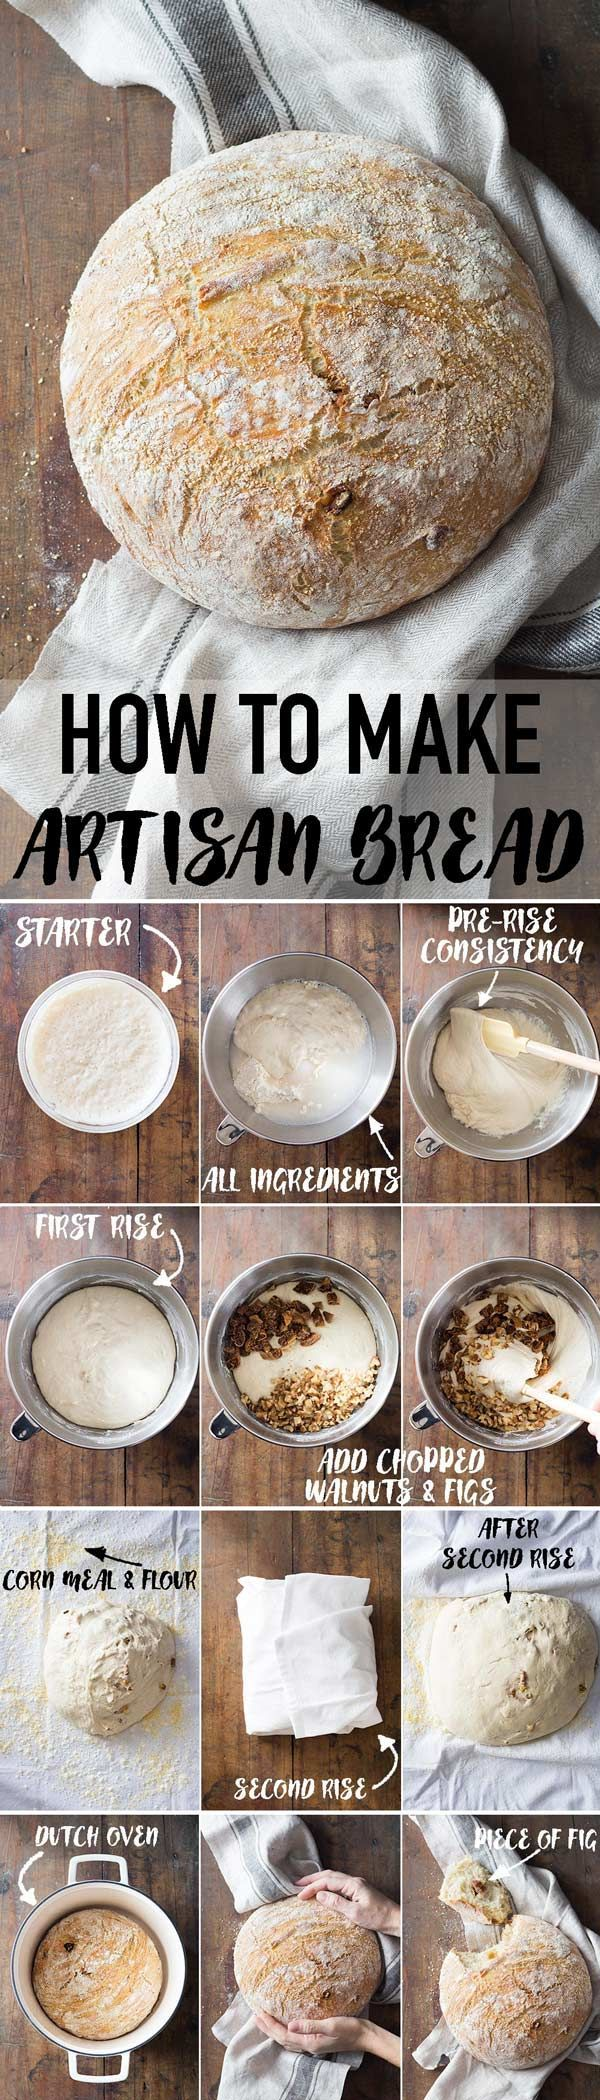 The most detailed step by step instructions on how to make Artisan Bread. Add whatever nuts and dried fruit you like to give it a personal spin. I made mine a Walnut Fig Artisan Bread. Spread some goat cheese on a piece and fly to HEAVEN! #bread #artisanbread #breadbaking #healthybread via @greenhealthycoo